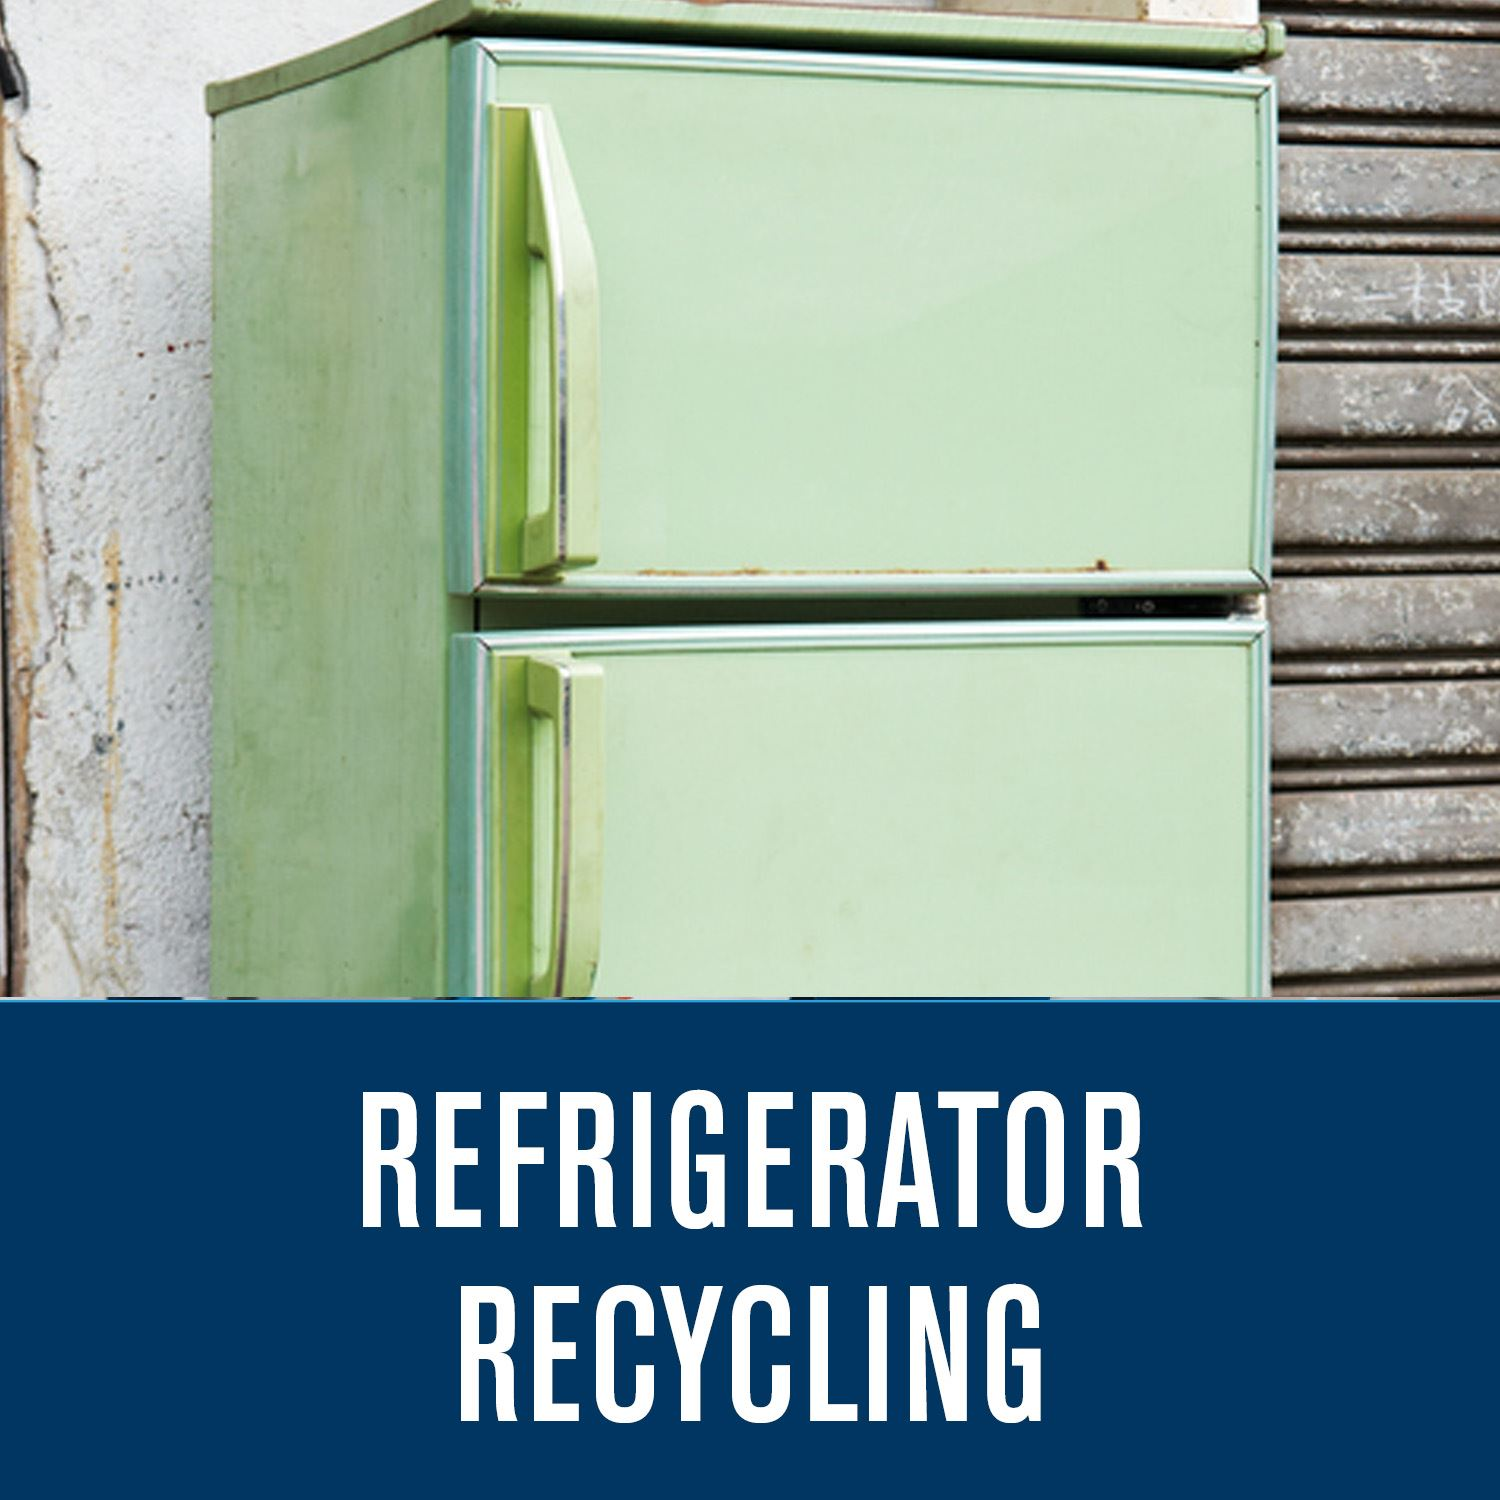 Refrigerator Recycling